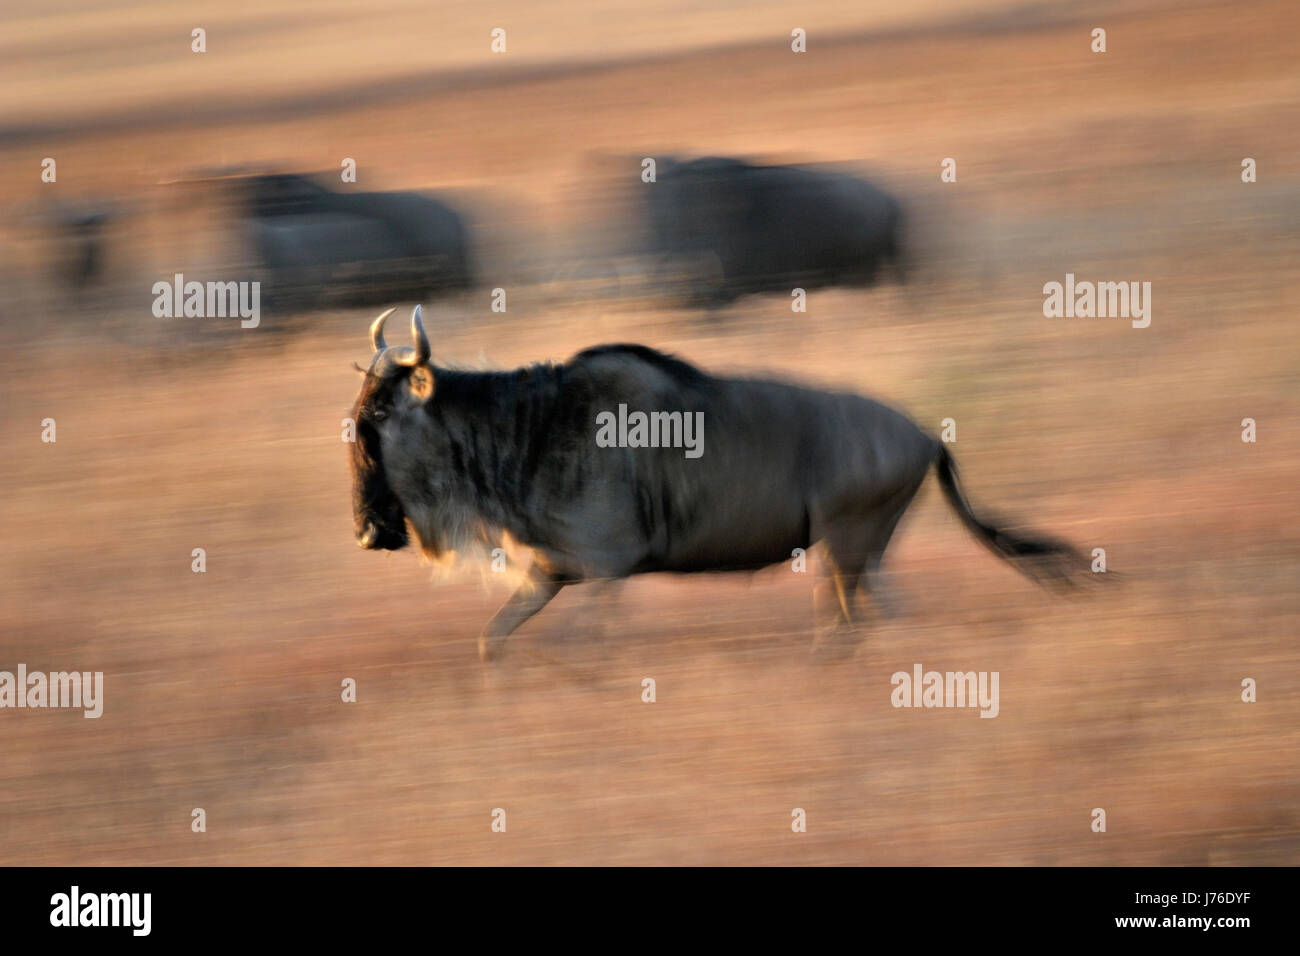 Wildebeest (Connochaetes taurinus) running during migration with motion blur, Serengeti National Park, Tanzania. Stock Photo